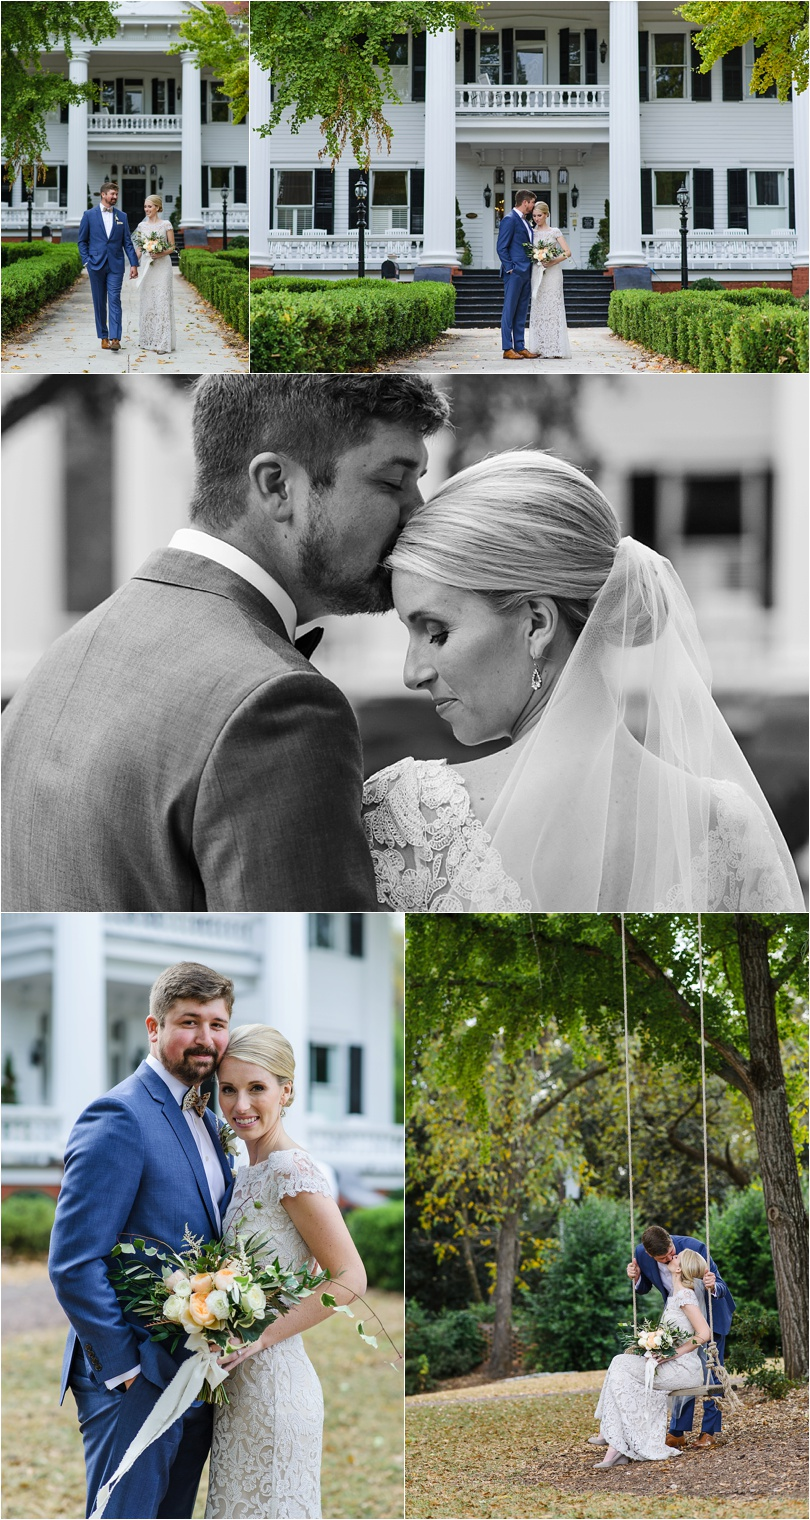 some other creative bride and groom portraits